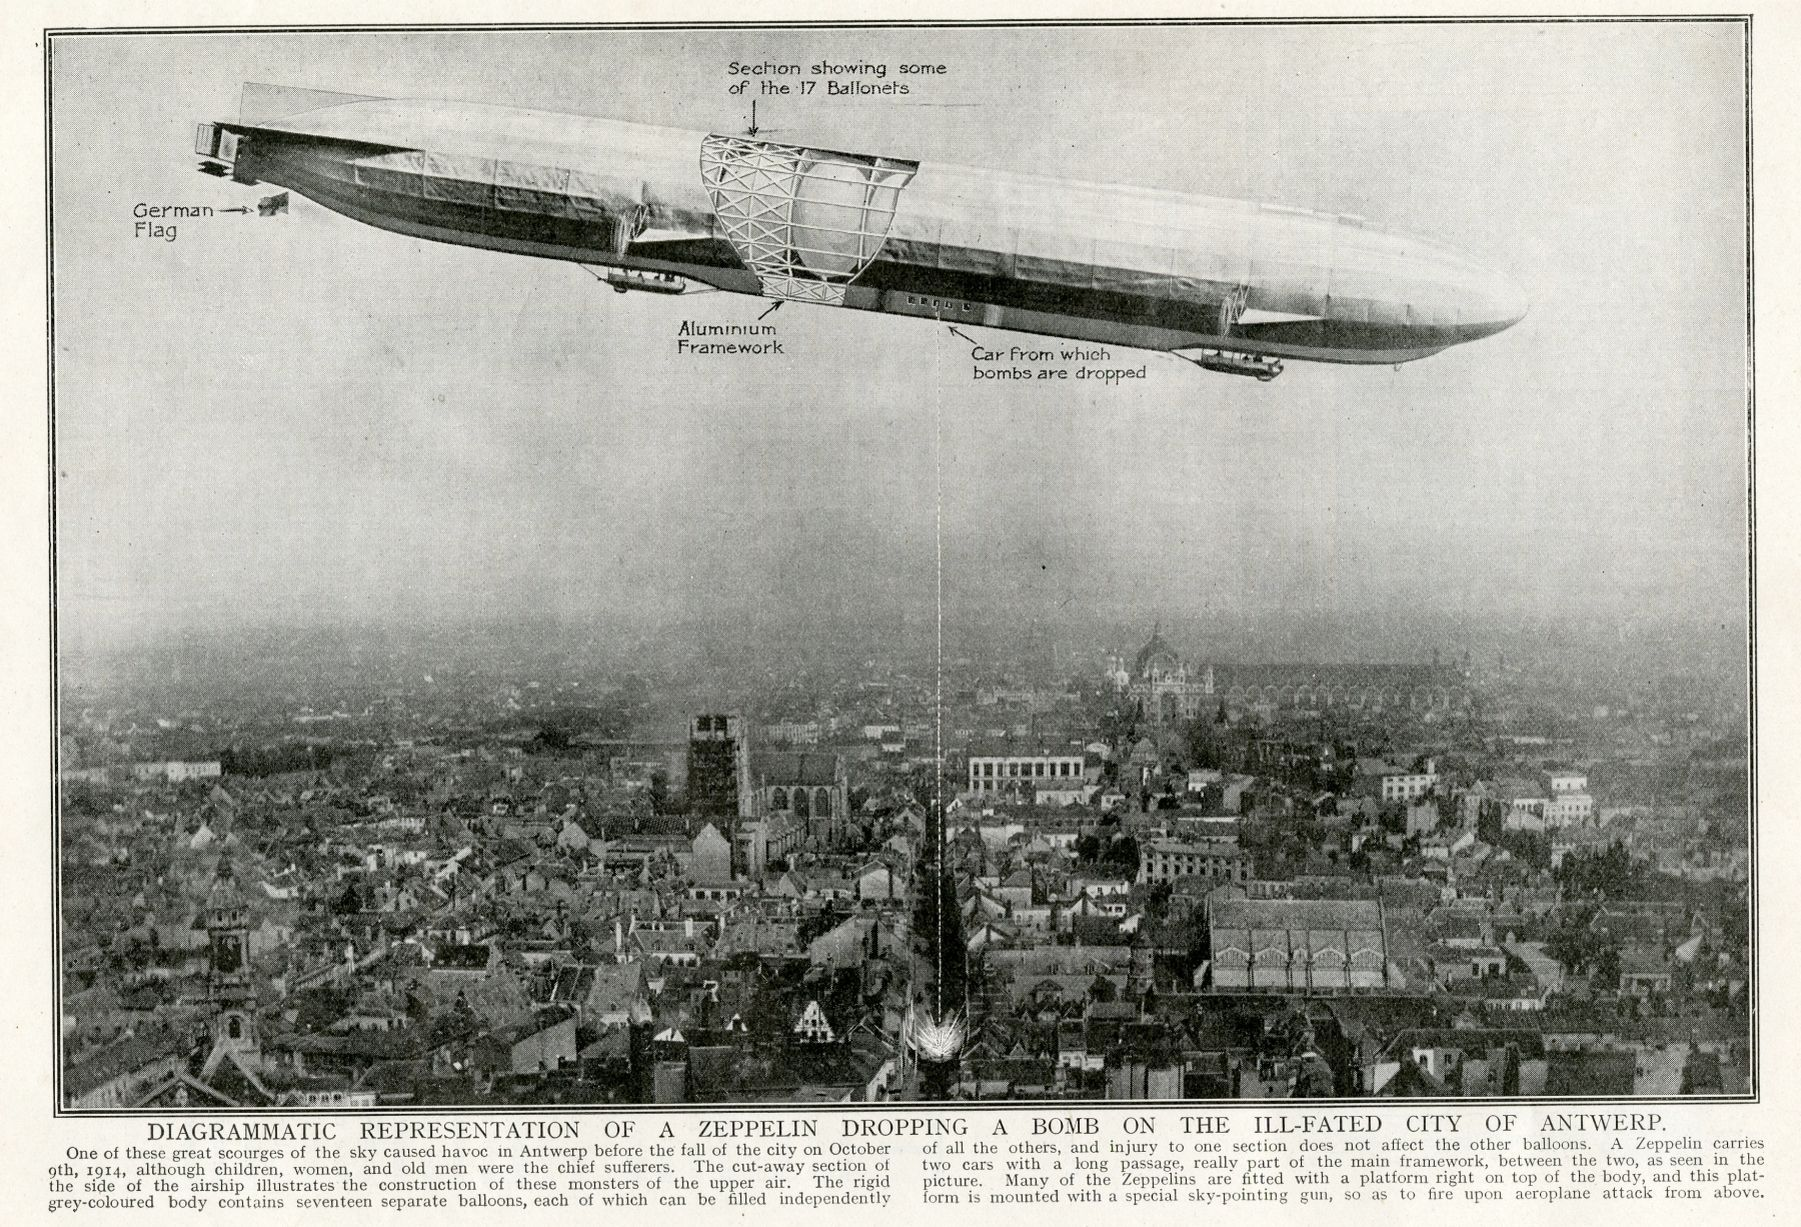 Wdiagramatic representation of a Zeppelin dropping a bomb on Antwerp, Belgium. 9 October 1914